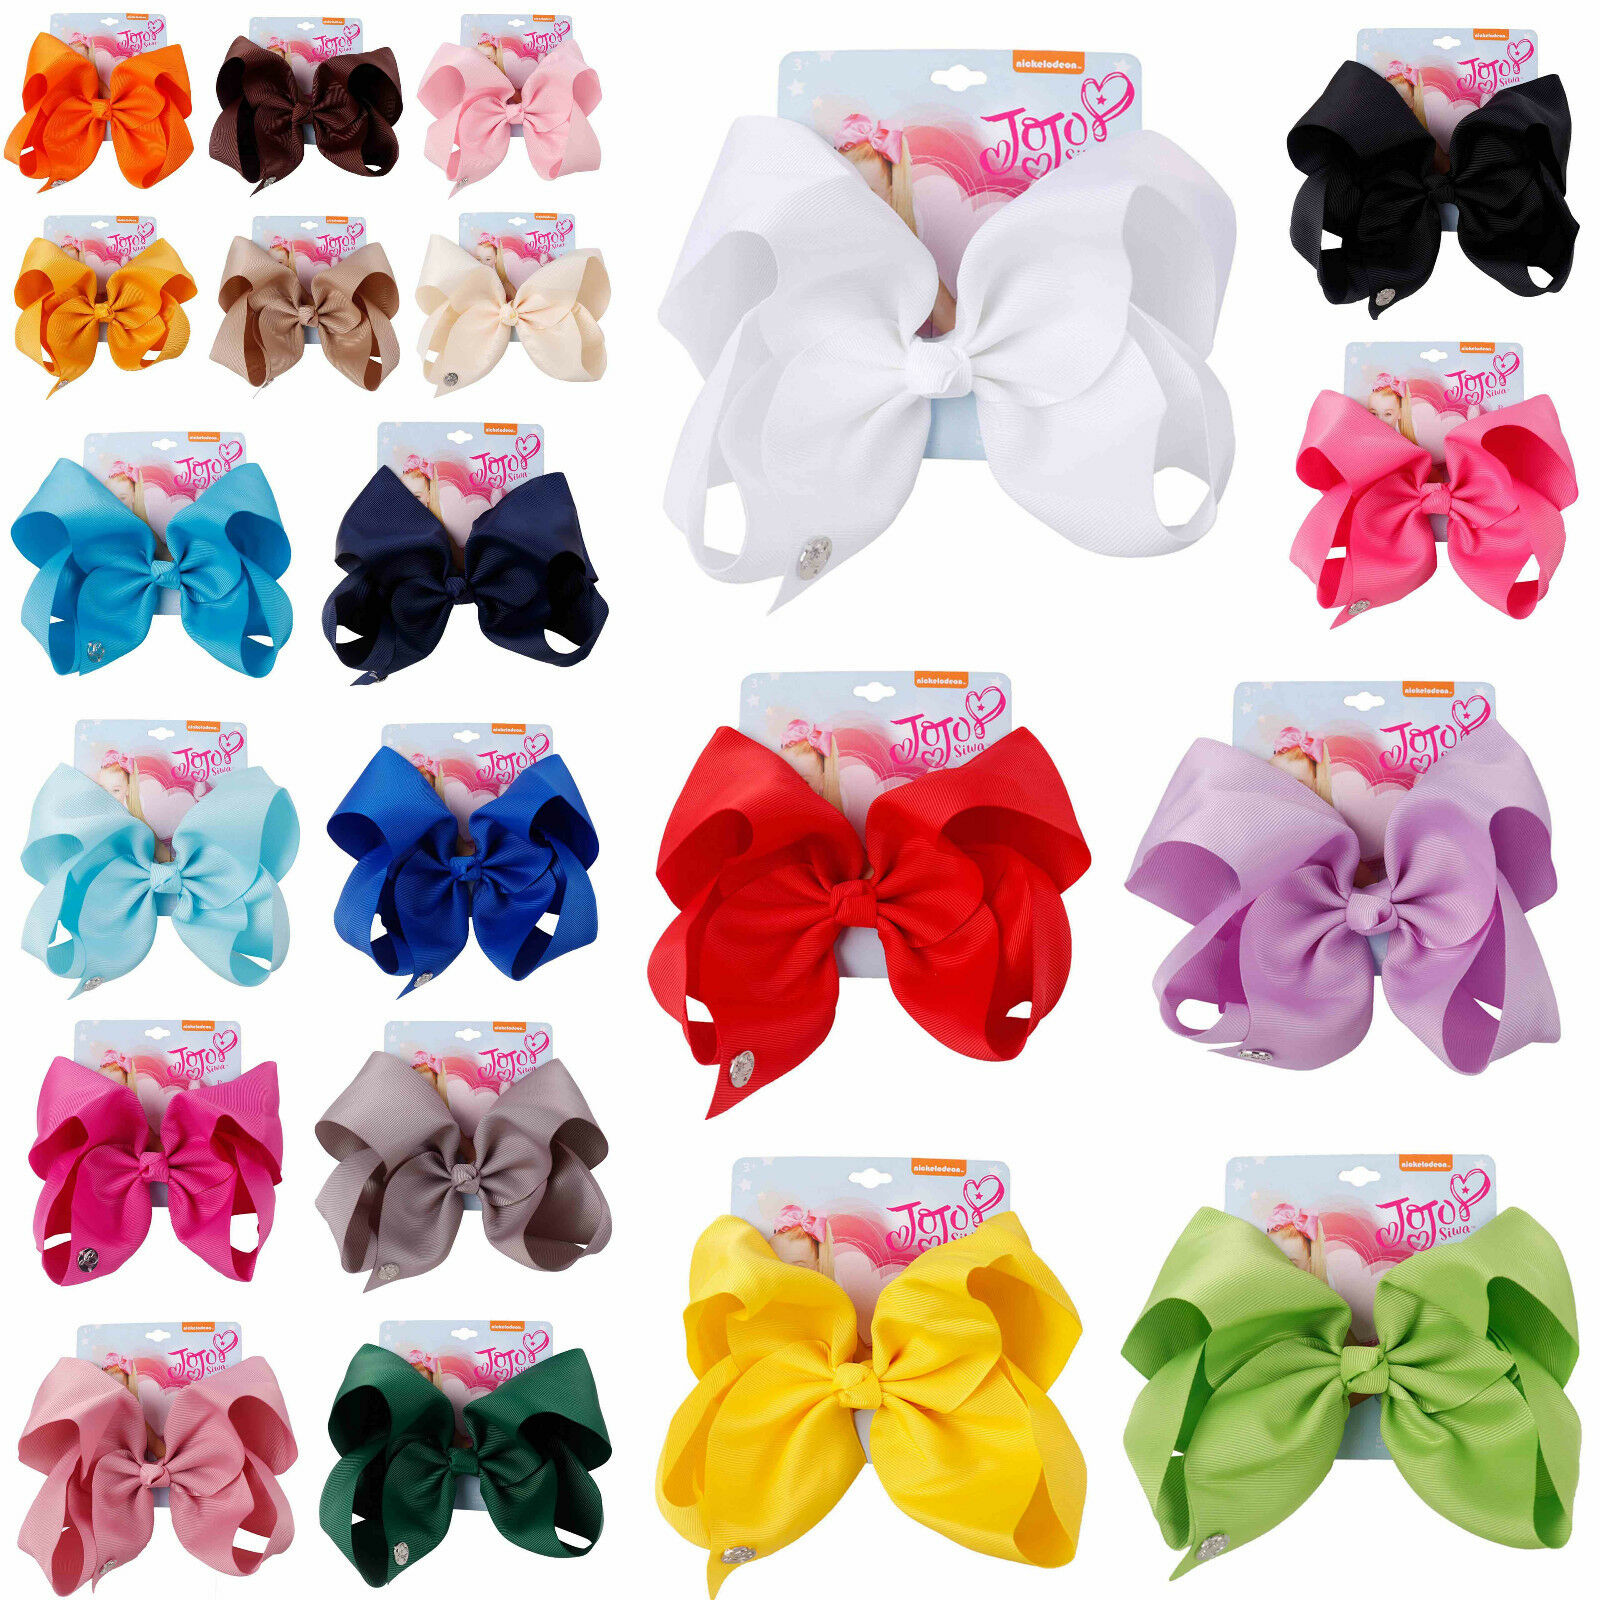 New JoJo Siwa 8 Inch Pure Color Hair Bow With Alligator Clip Girl Kids Bowknot